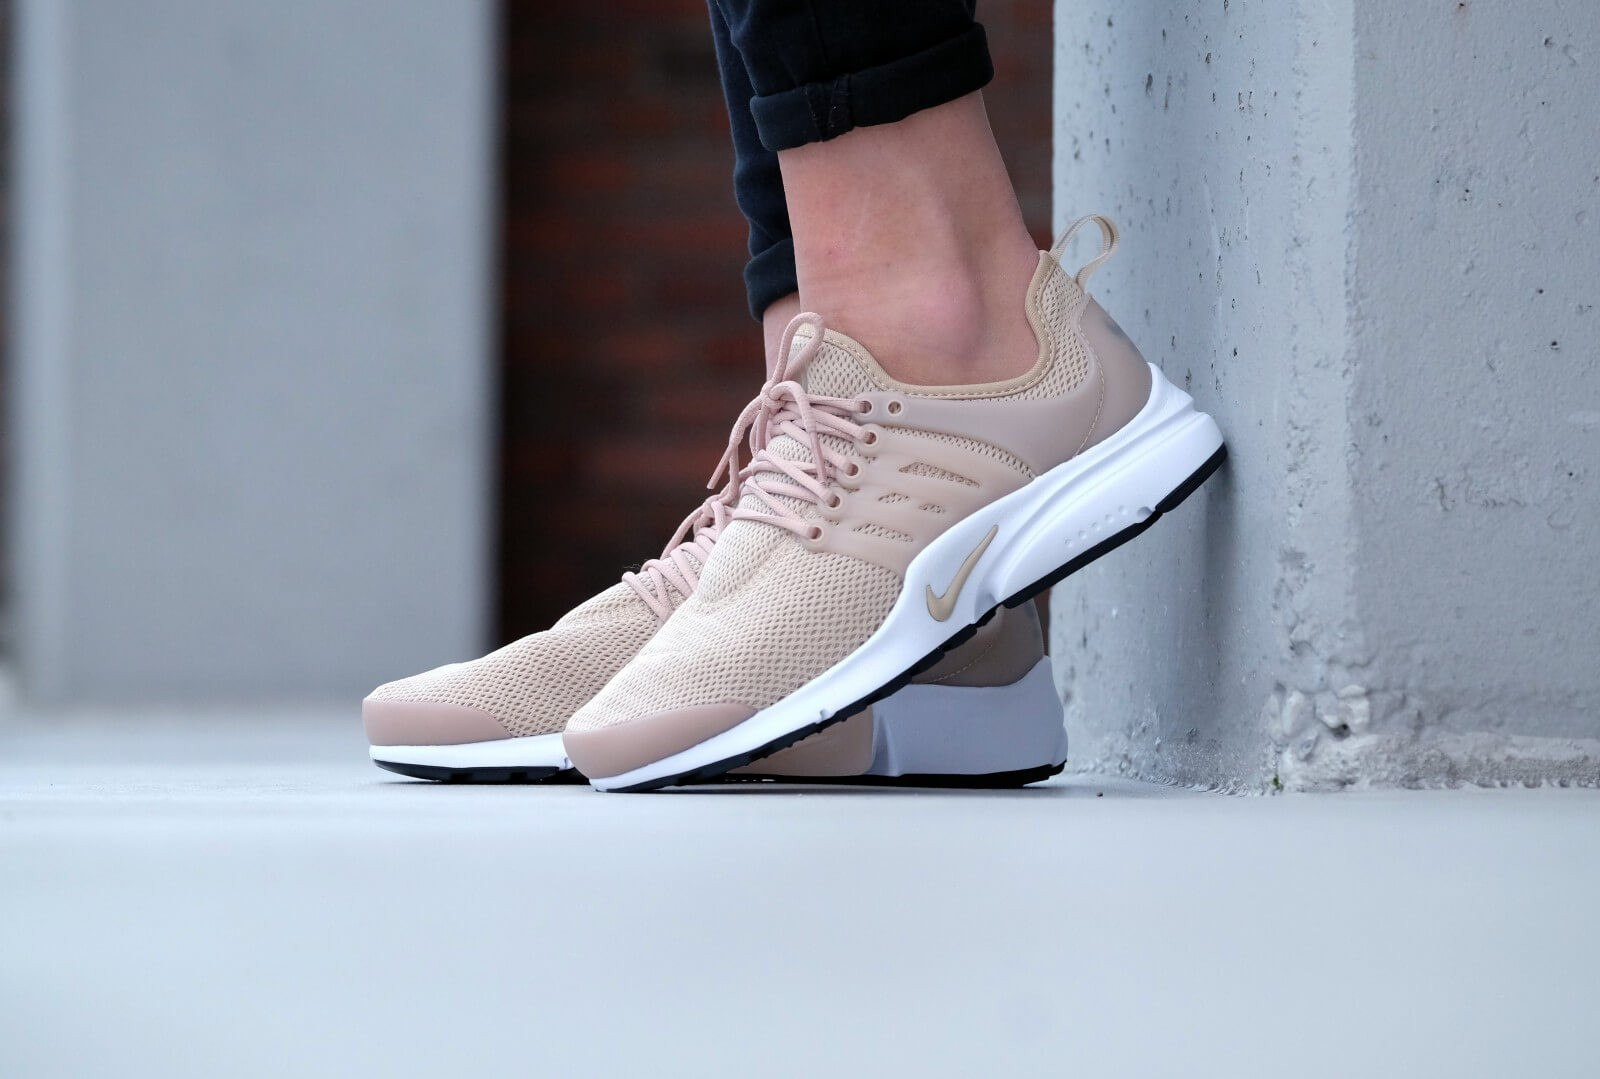 new concept c3d18 911a2 Nike Air Presto Fly Femme ... Nike Air Presto - Baskets Nike Femme  Linen Linen Noir Blanc C1x623 - Chaussures Nike Femme